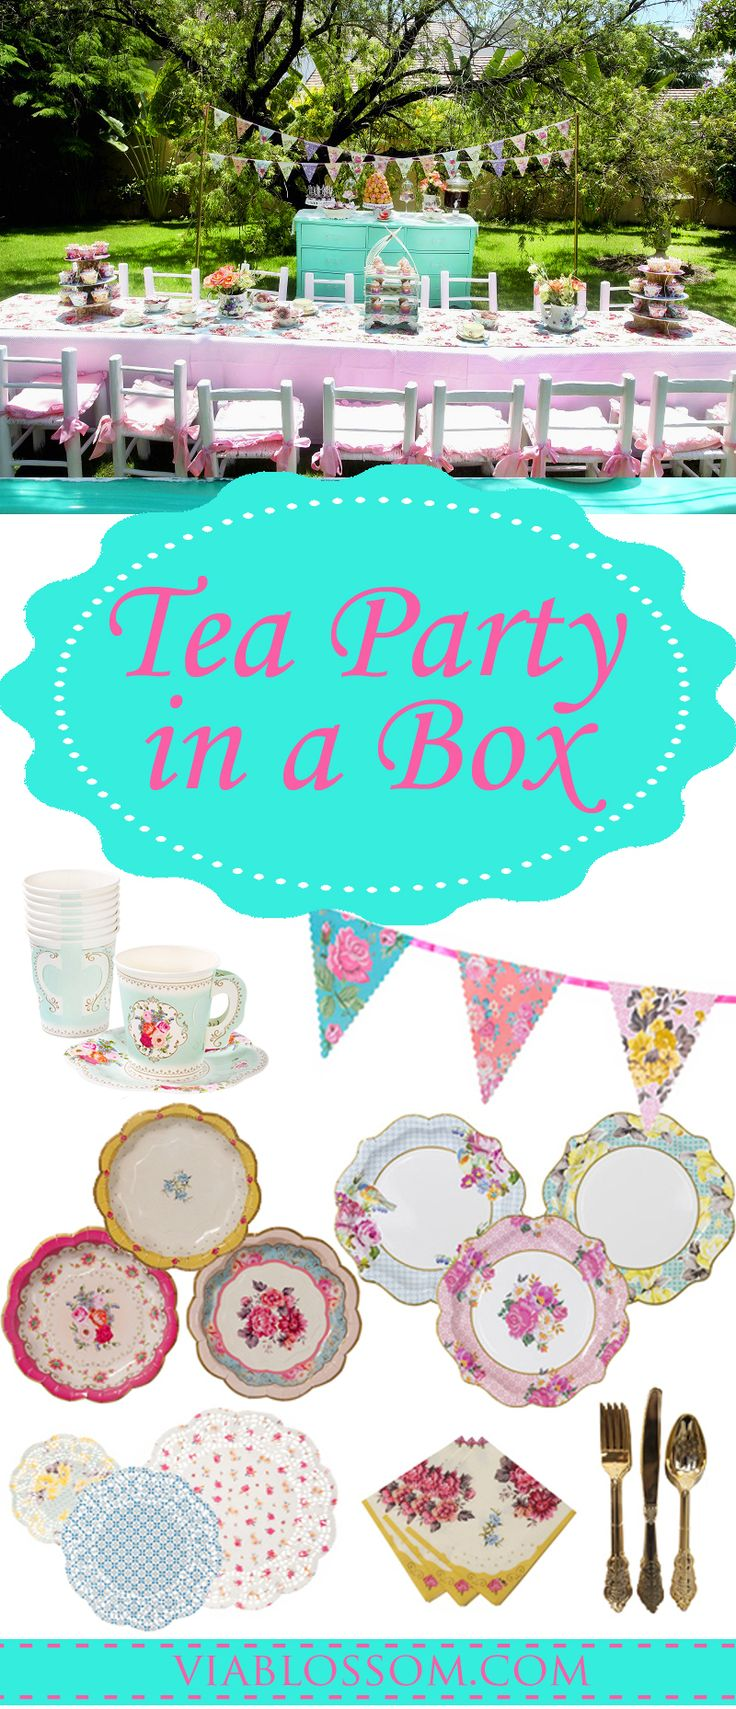 Leave the guess work behind! Celebrate a Fabulous Tea Party for 12 guests with our Tea Party in a Box! In this party pack we have included our favorite Tea Party Supplies for easy shopping at a lower cost